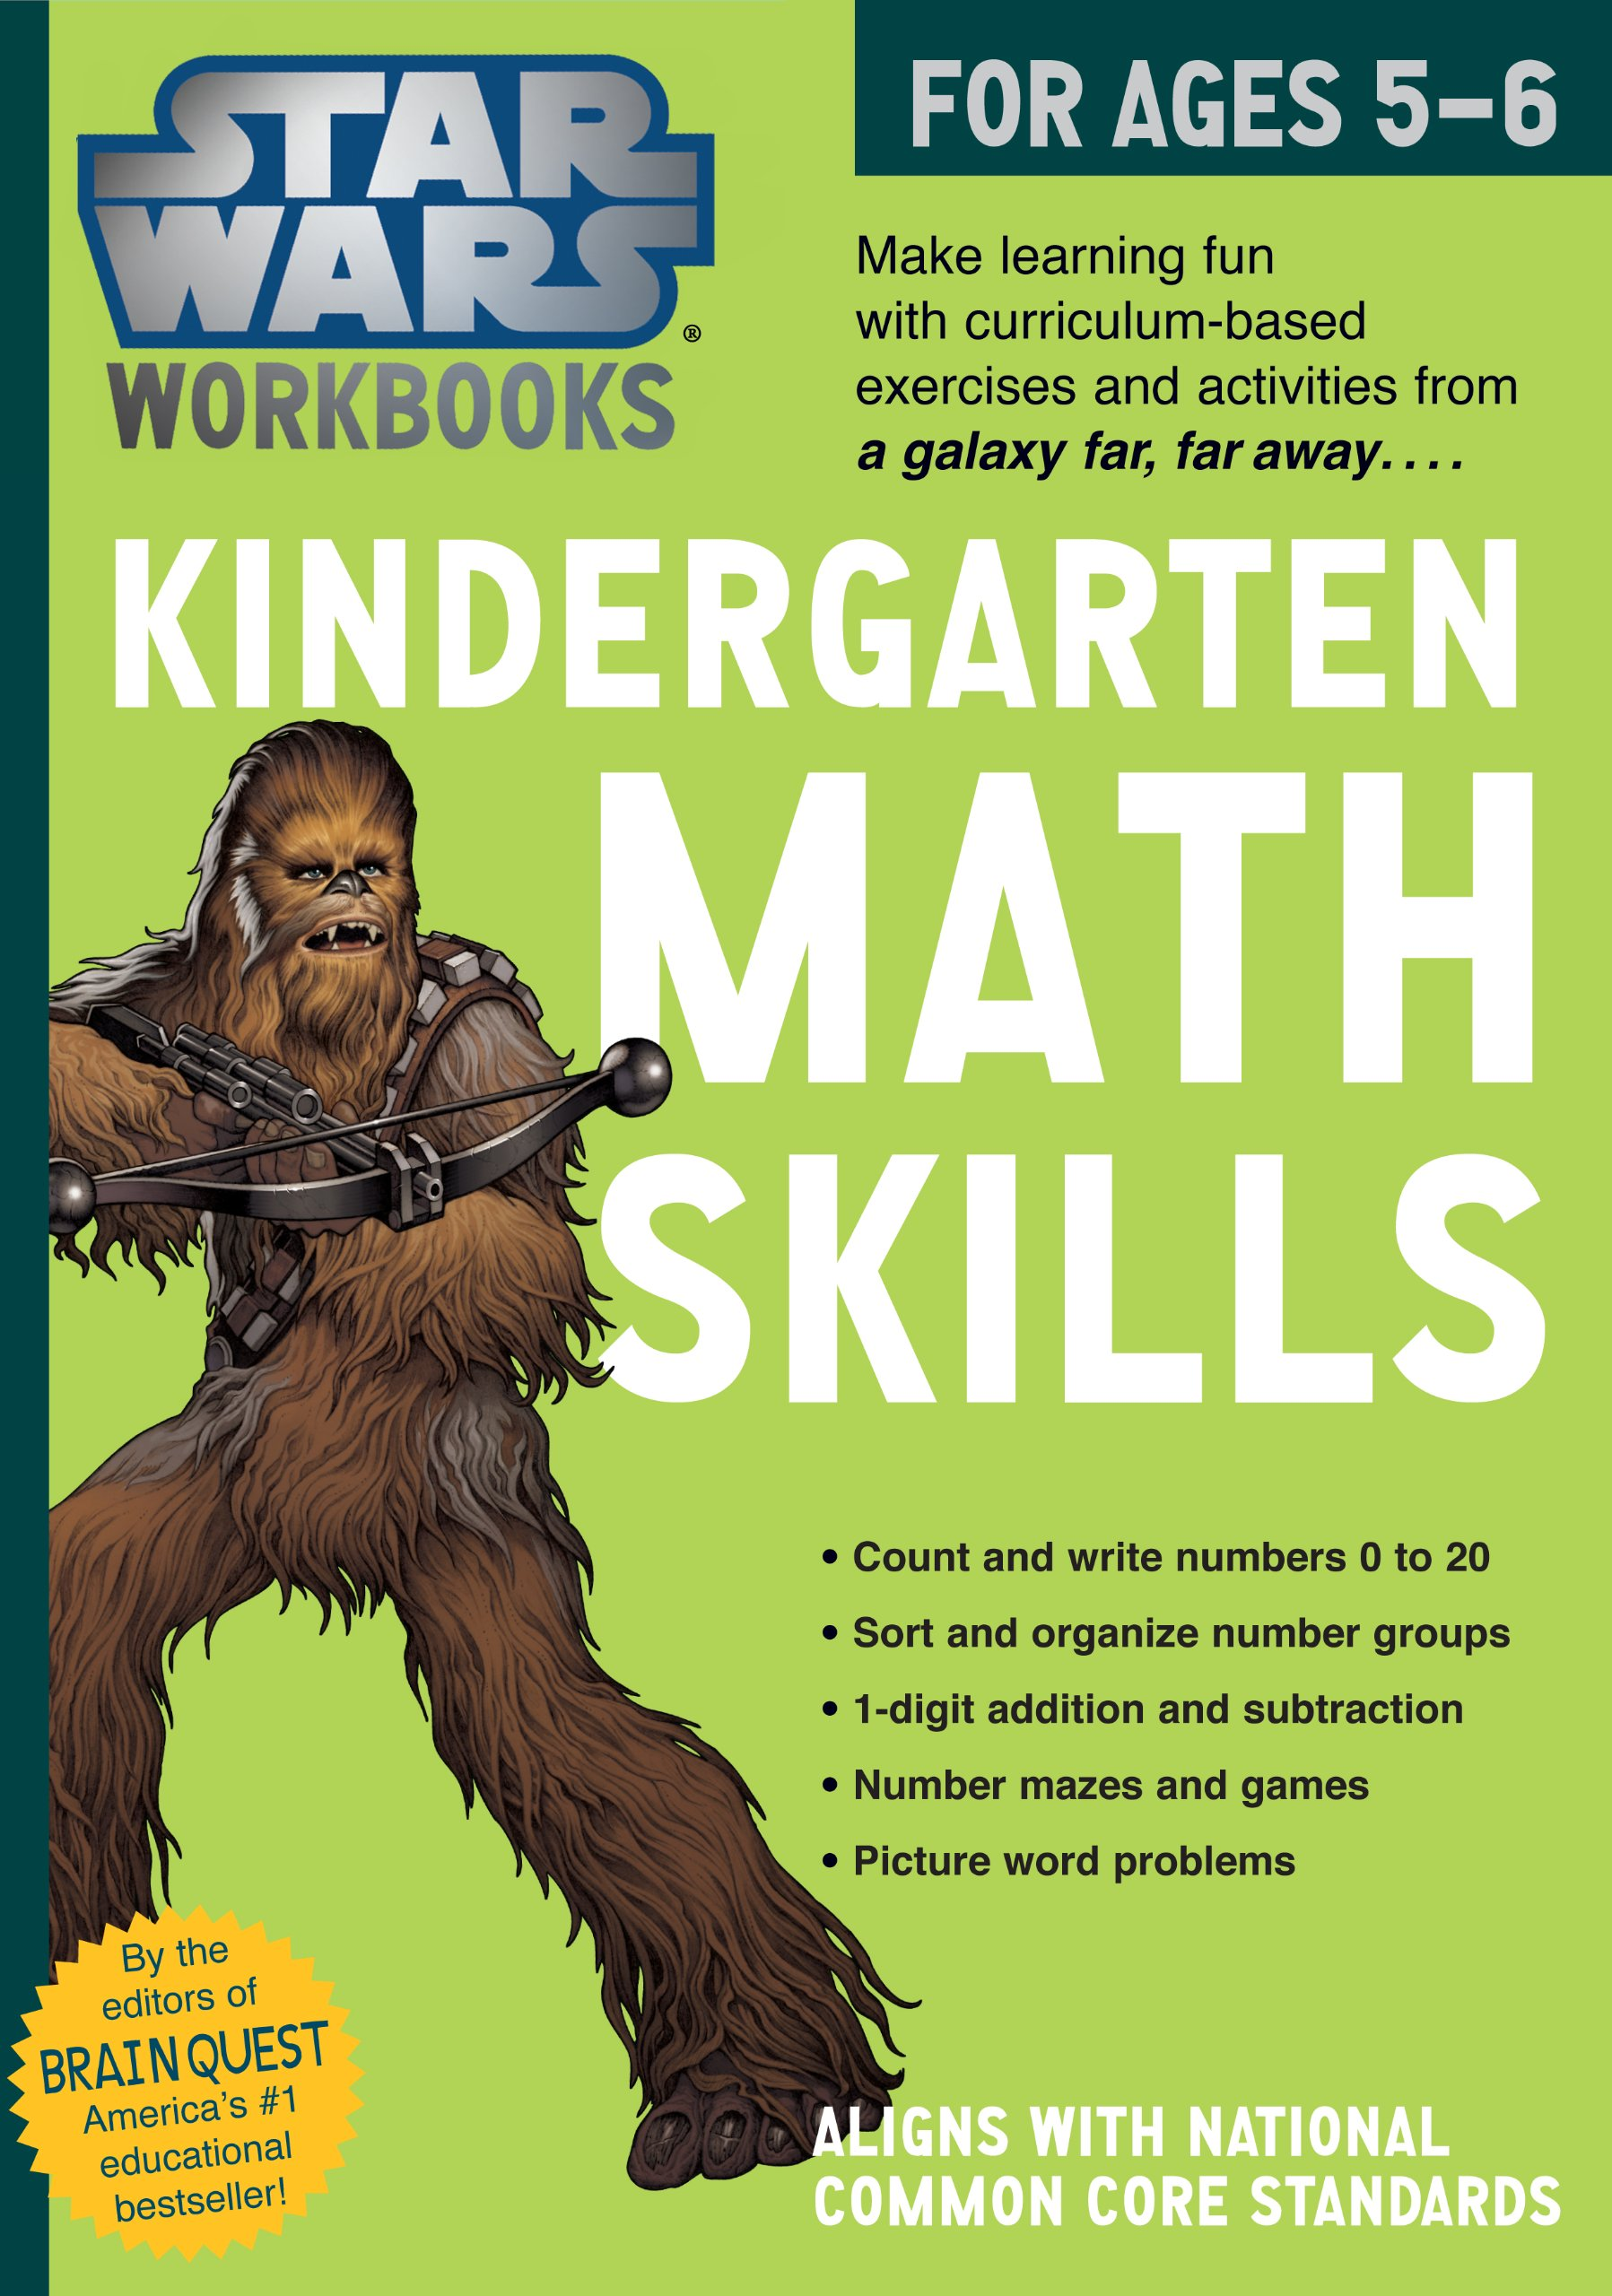 Star Wars Workbooks: Kindergarten Math Skills